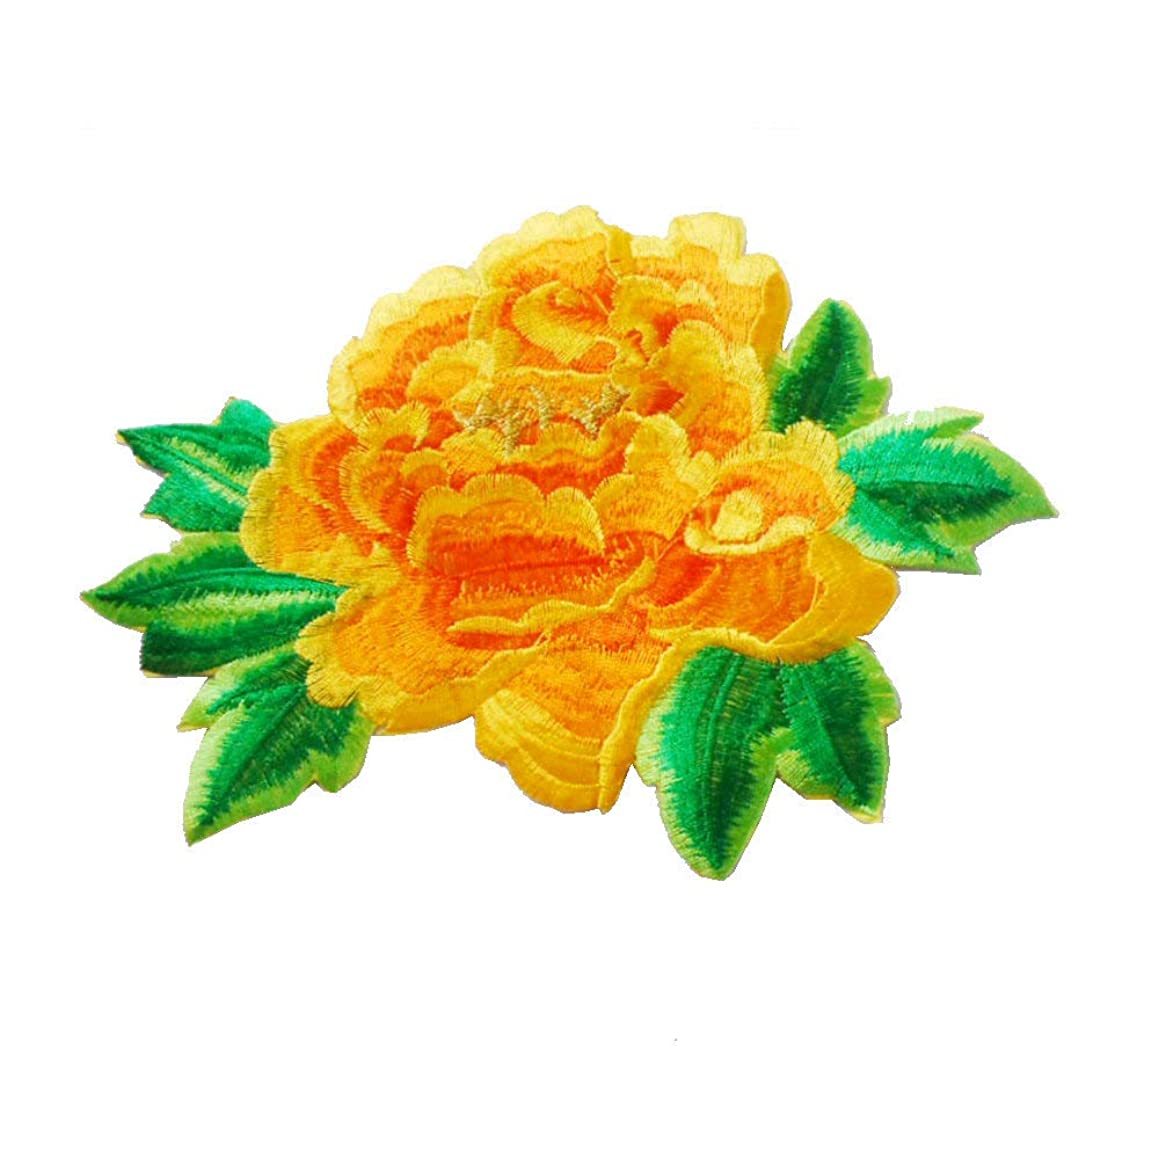 1pcs Embroidery Iron-on Patches Rose Flower Applique Sew On Sticker Trimming Sewing Accessories For DIY Craft(8.25.9inch) (Yellow)